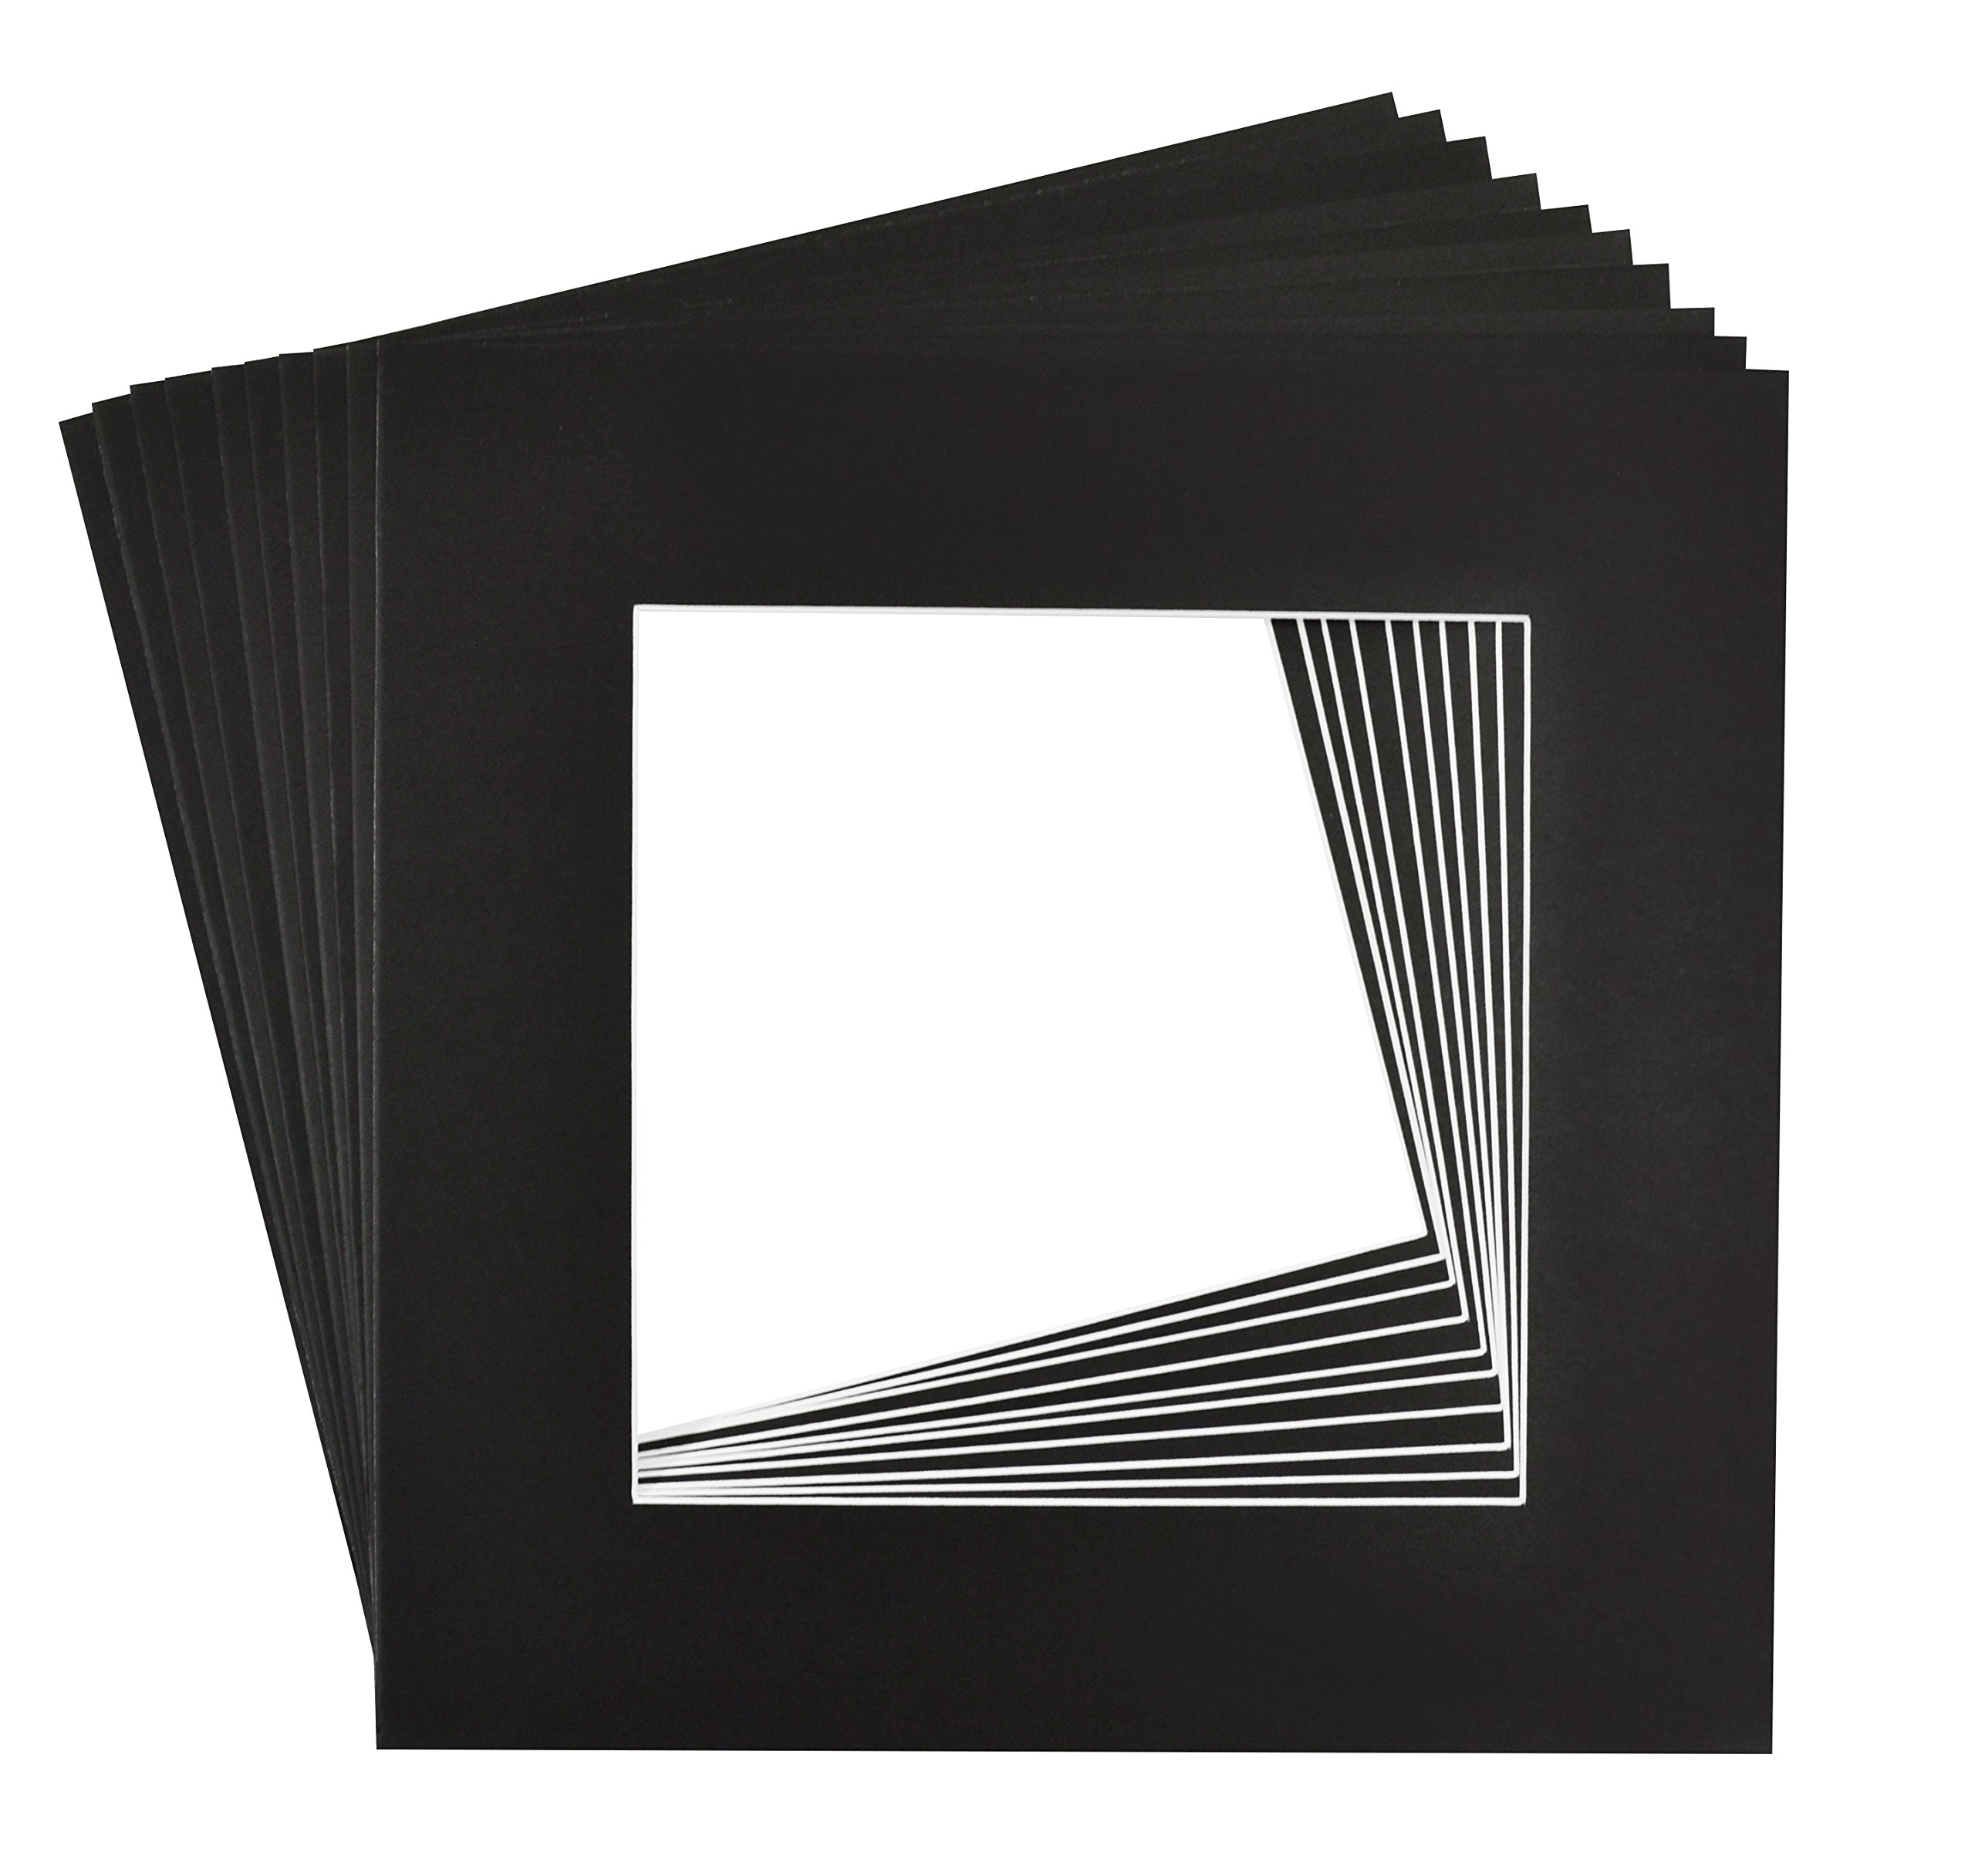 Golden State Art, Pack of 10, 12x12 Black Picture Mats Mattes with White Core Bevel Cut for 8x8 Photo